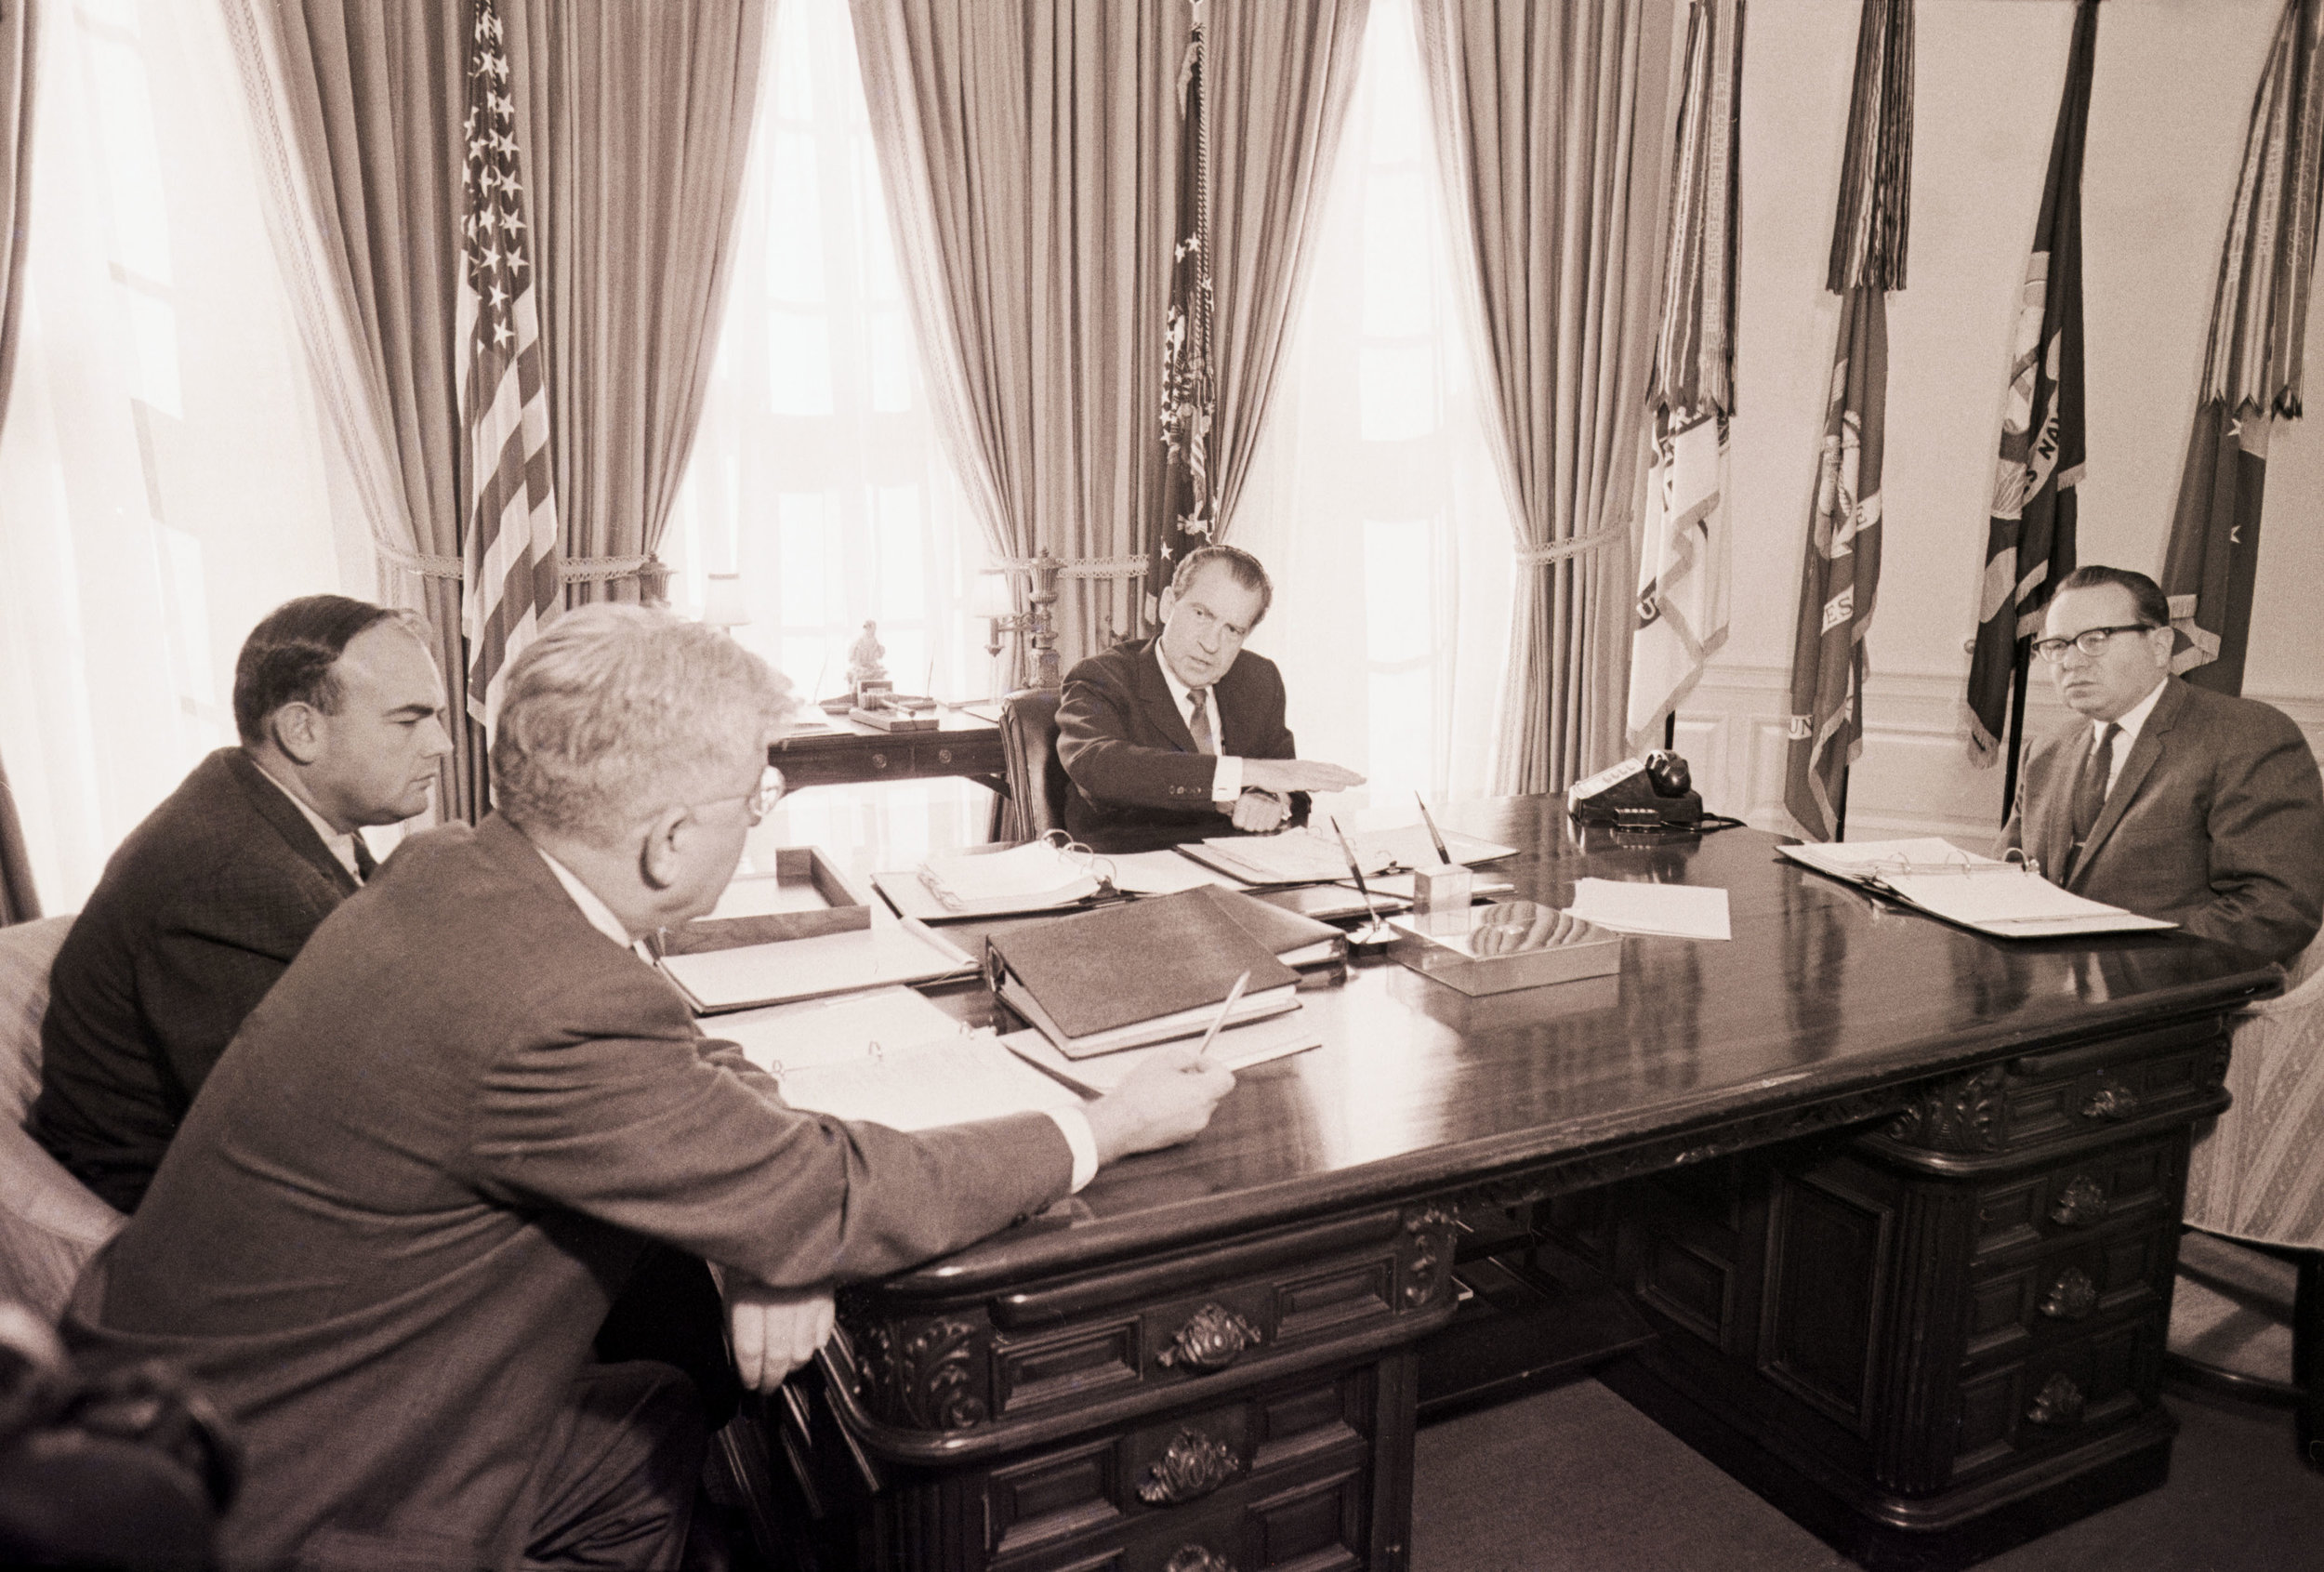 John Ehrlichman, second from left, in the White House in 1969.